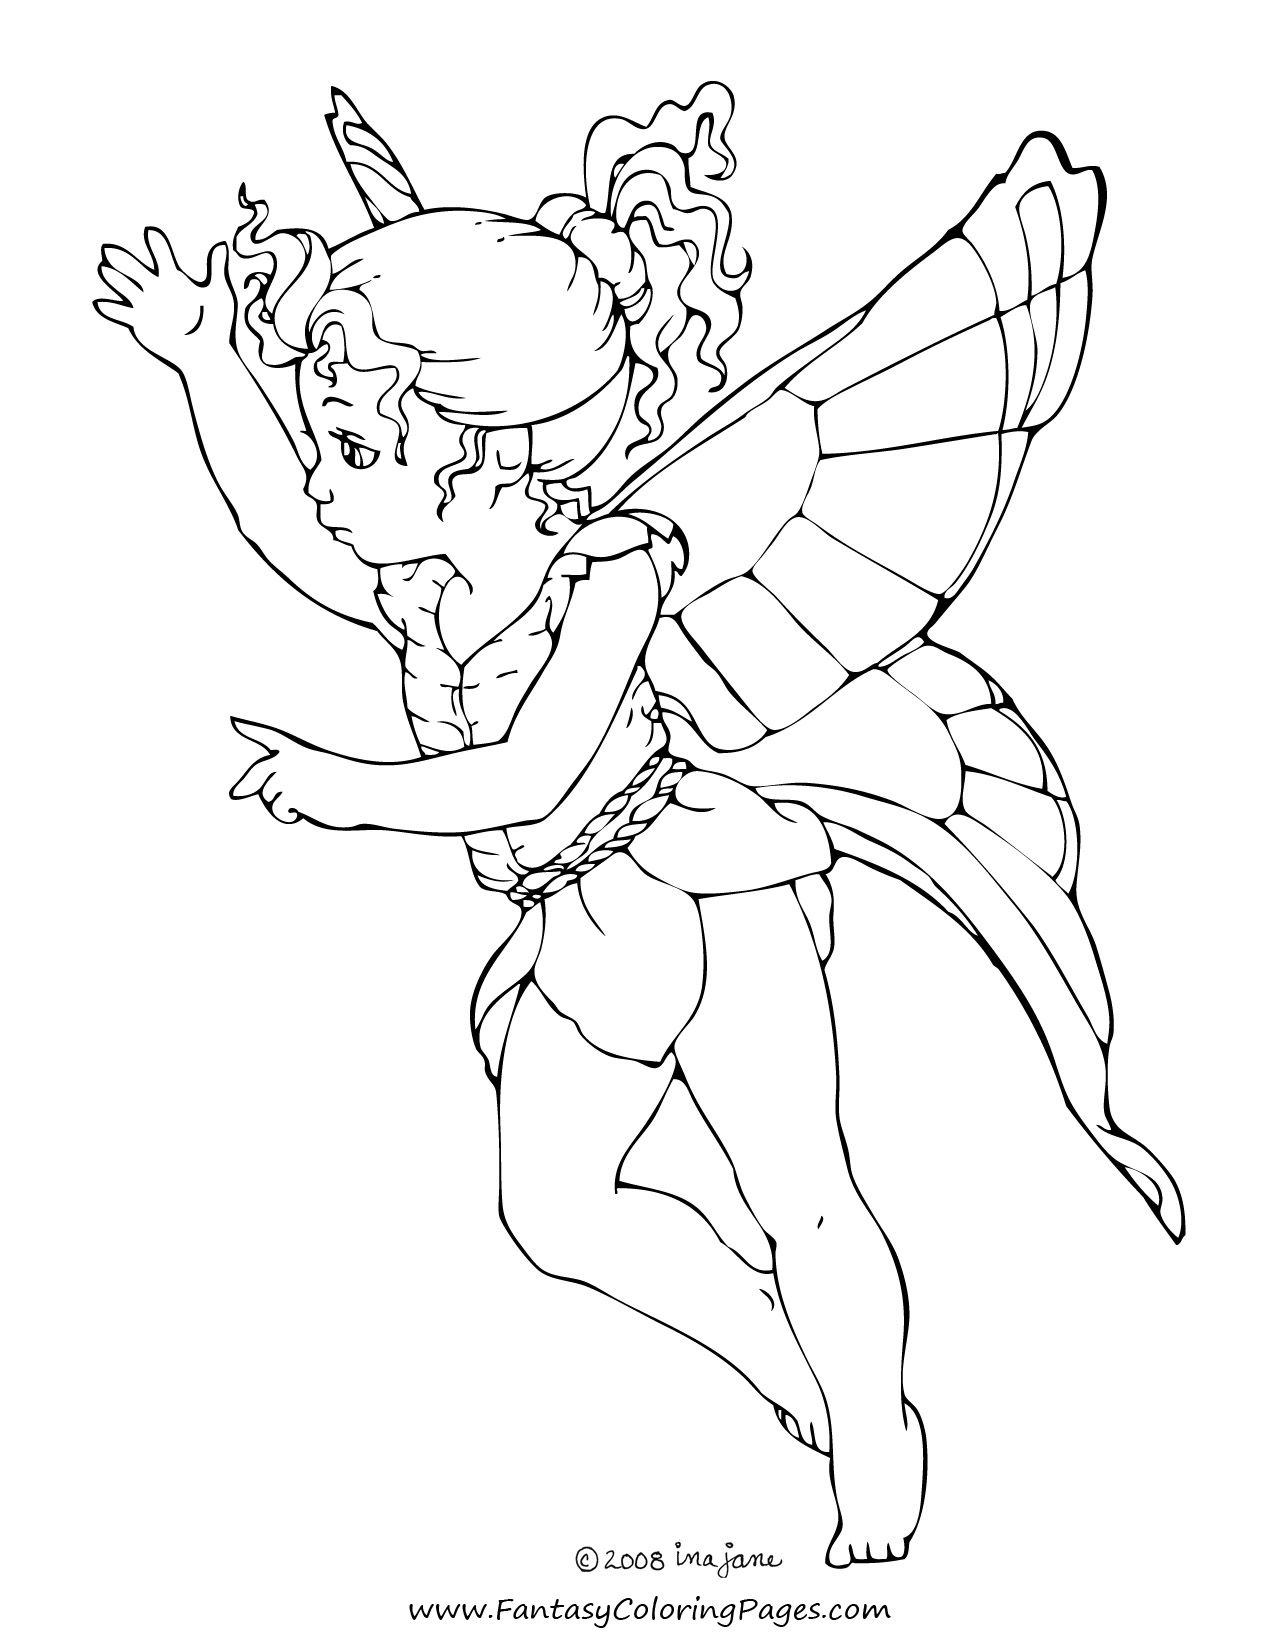 Blog Fantasy Coloring Pages Fairy coloring pages Fairy coloring Coloring pages